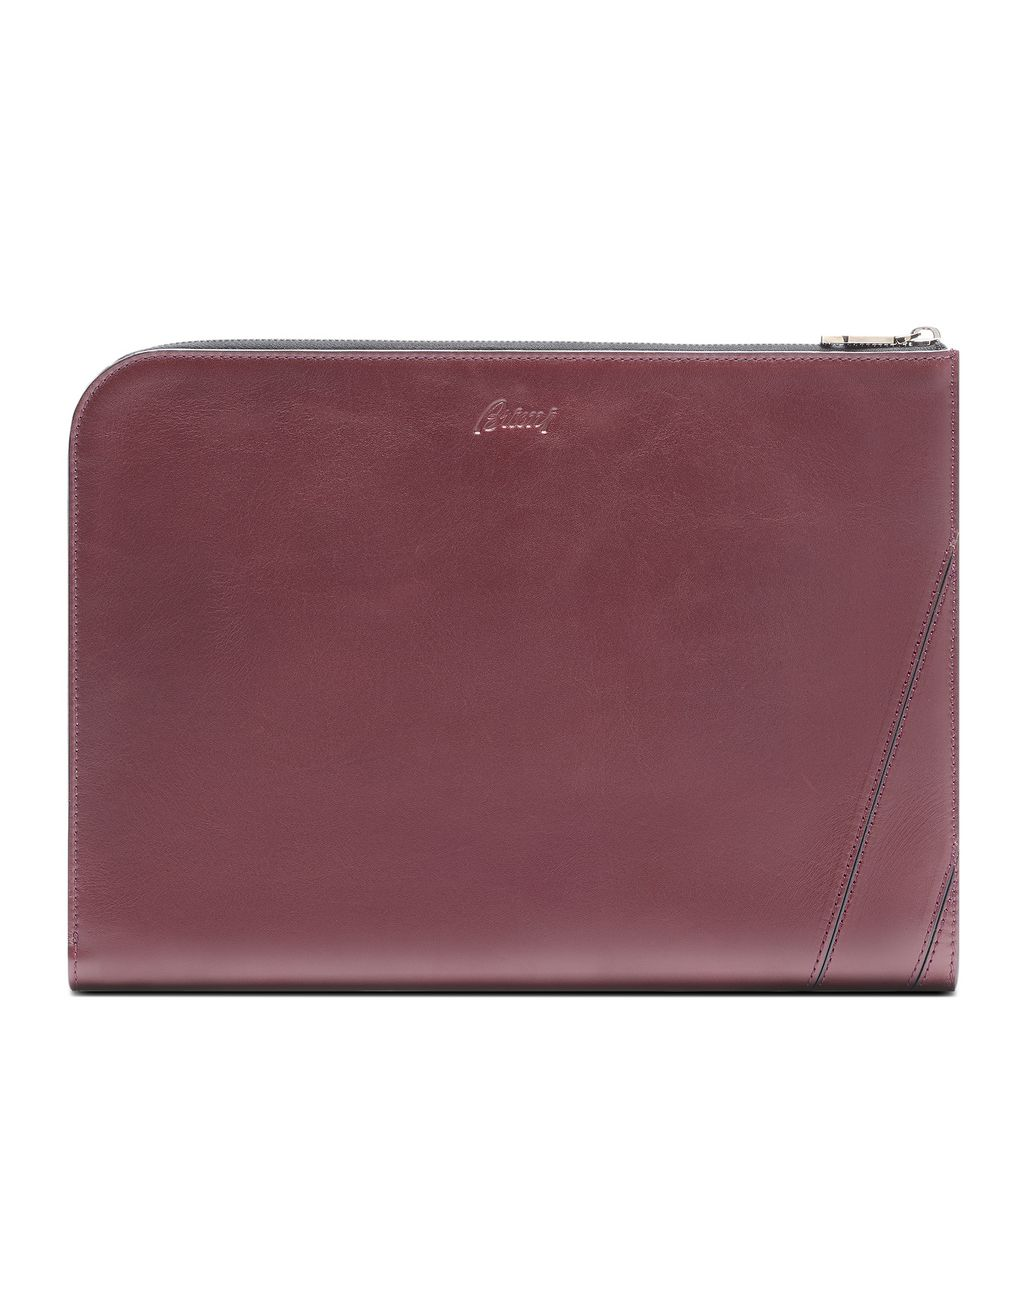 BRIONI Bordeaux Folio Document Holder Leather Goods Man f